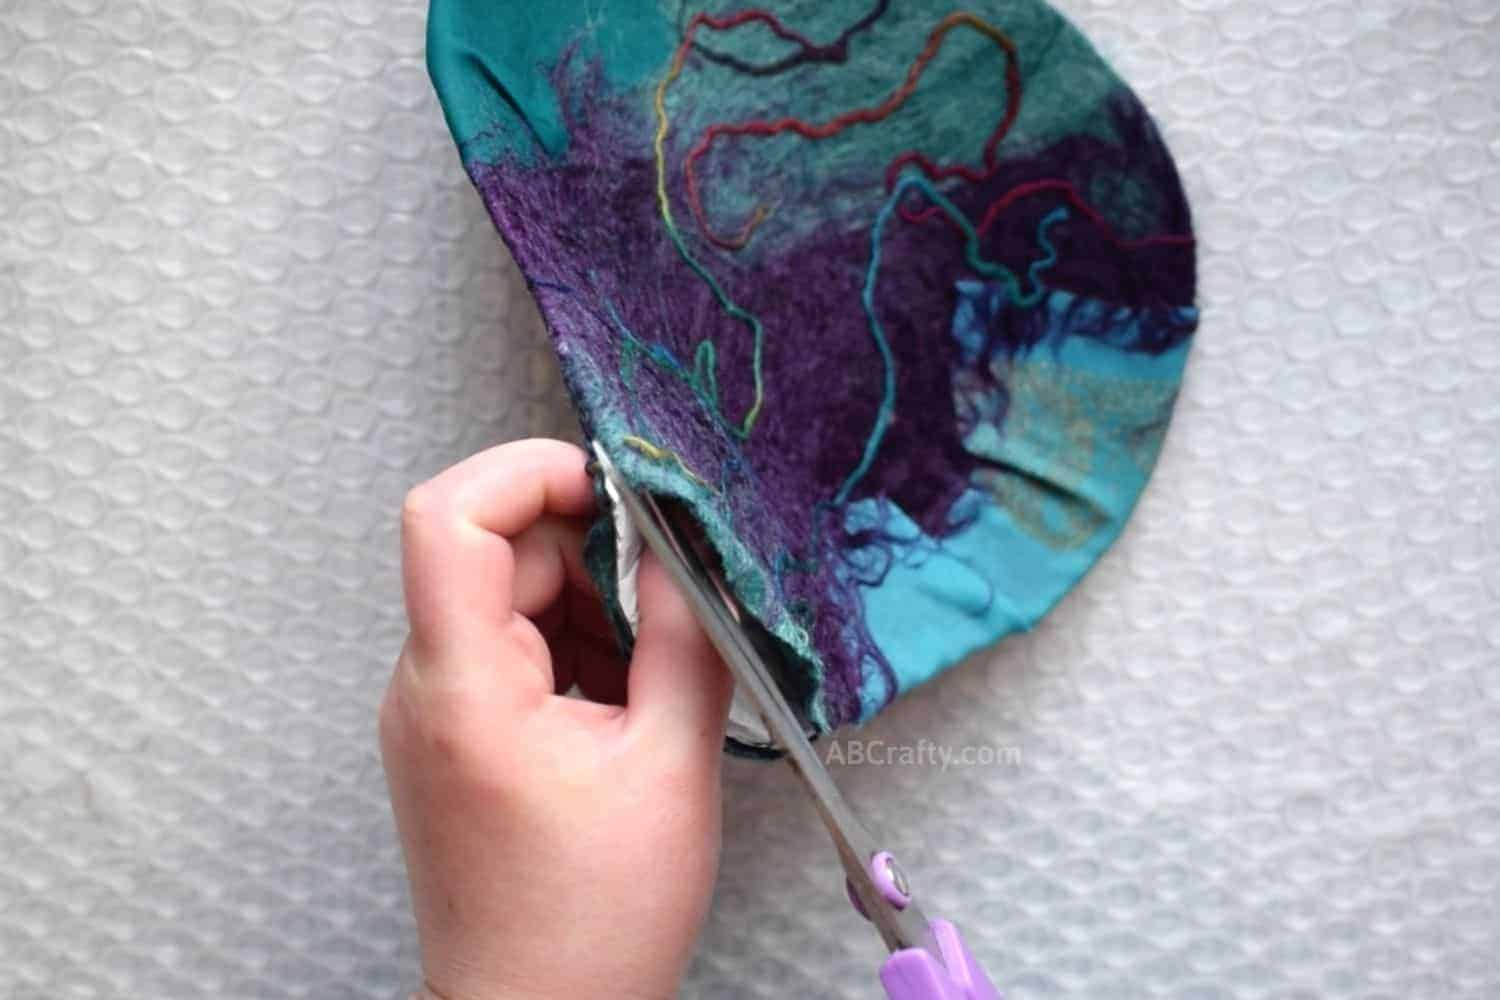 Using scissors to cut along the top of the lightly felted coin purse to remove the resist